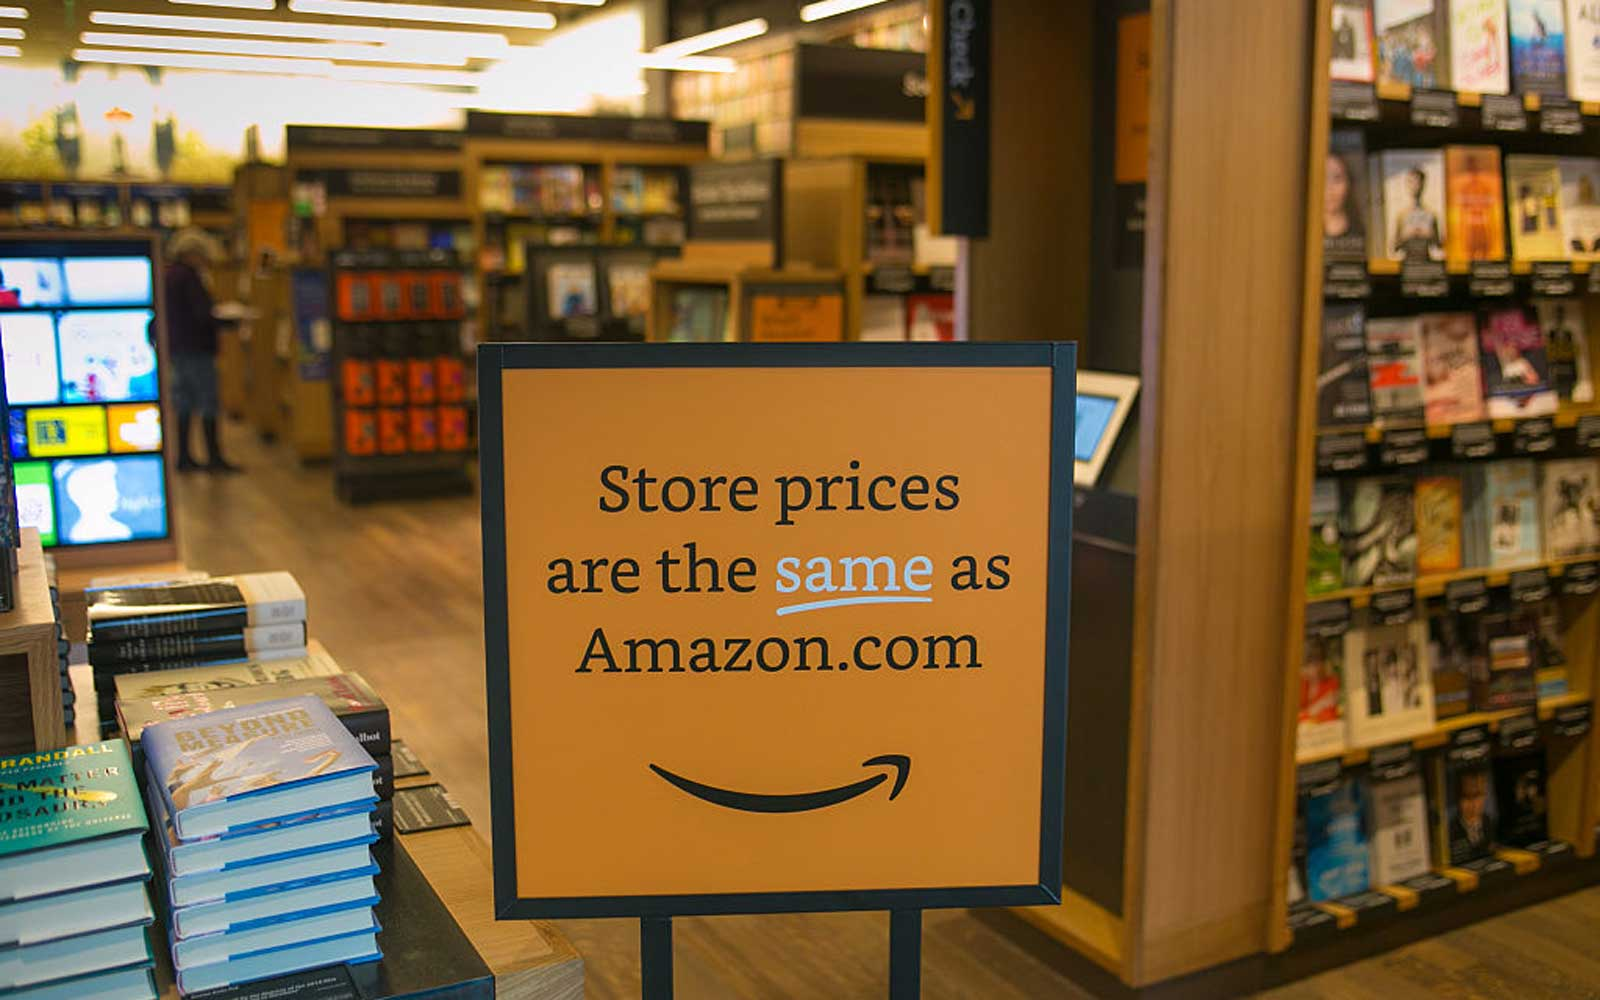 Amazon opens their first bookstore in New York City